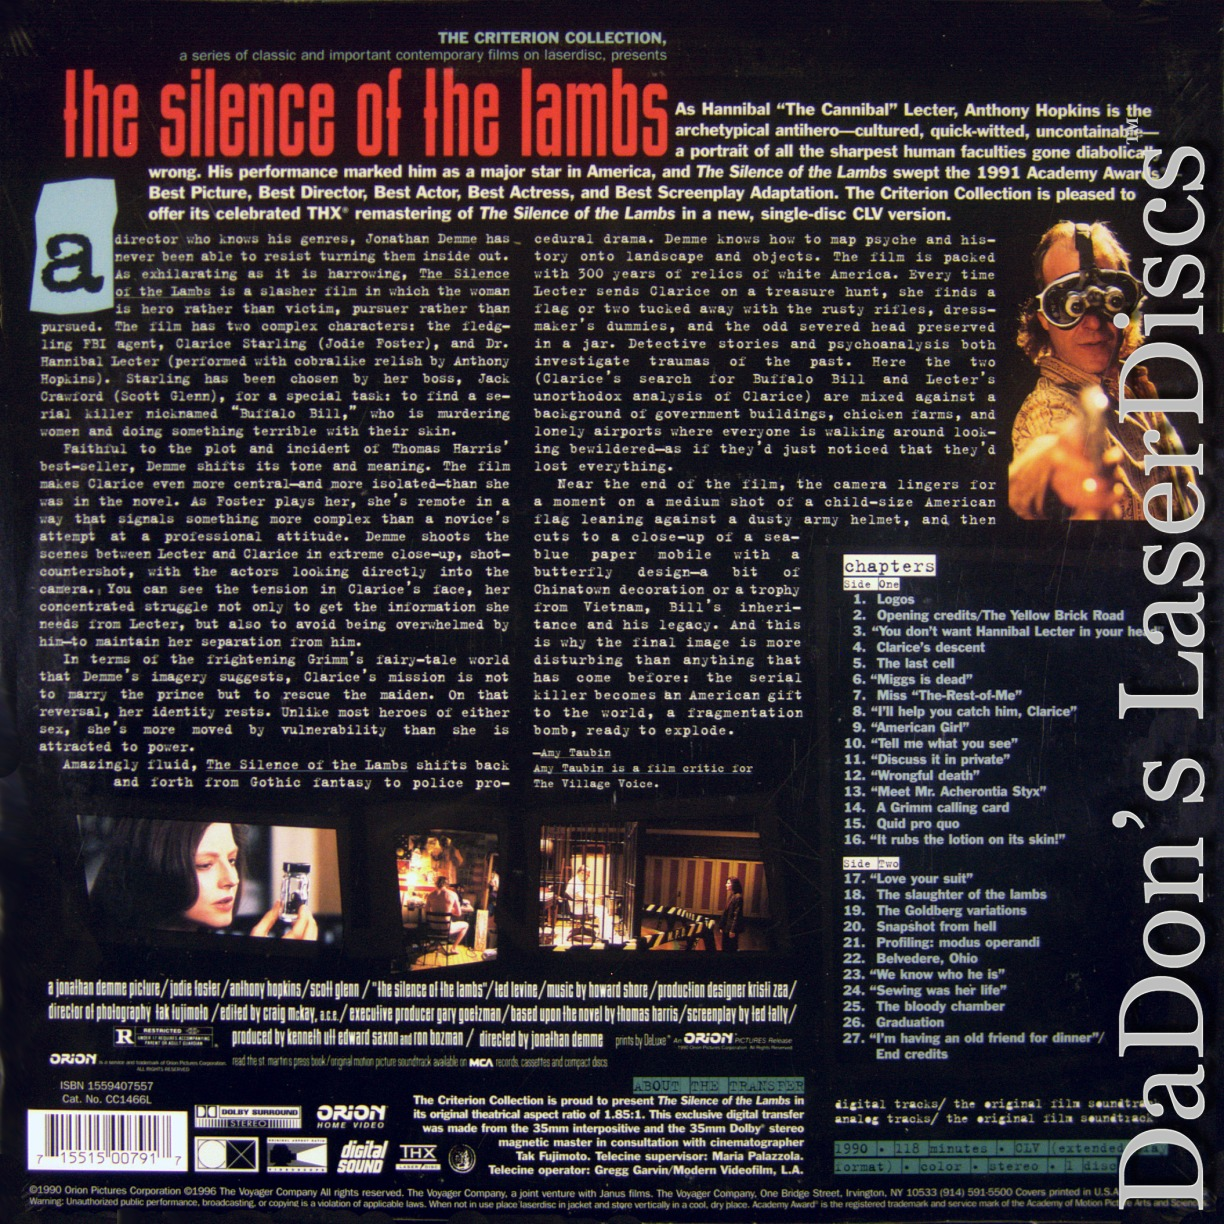 a critical analysis of silence of the lambs Immediately download the the silence of the lambs summary, chapter-by-chapter analysis, book notes, essays, quotes, character descriptions, lesson plans, and more - everything you need for studying or teaching the silence of the lambs.